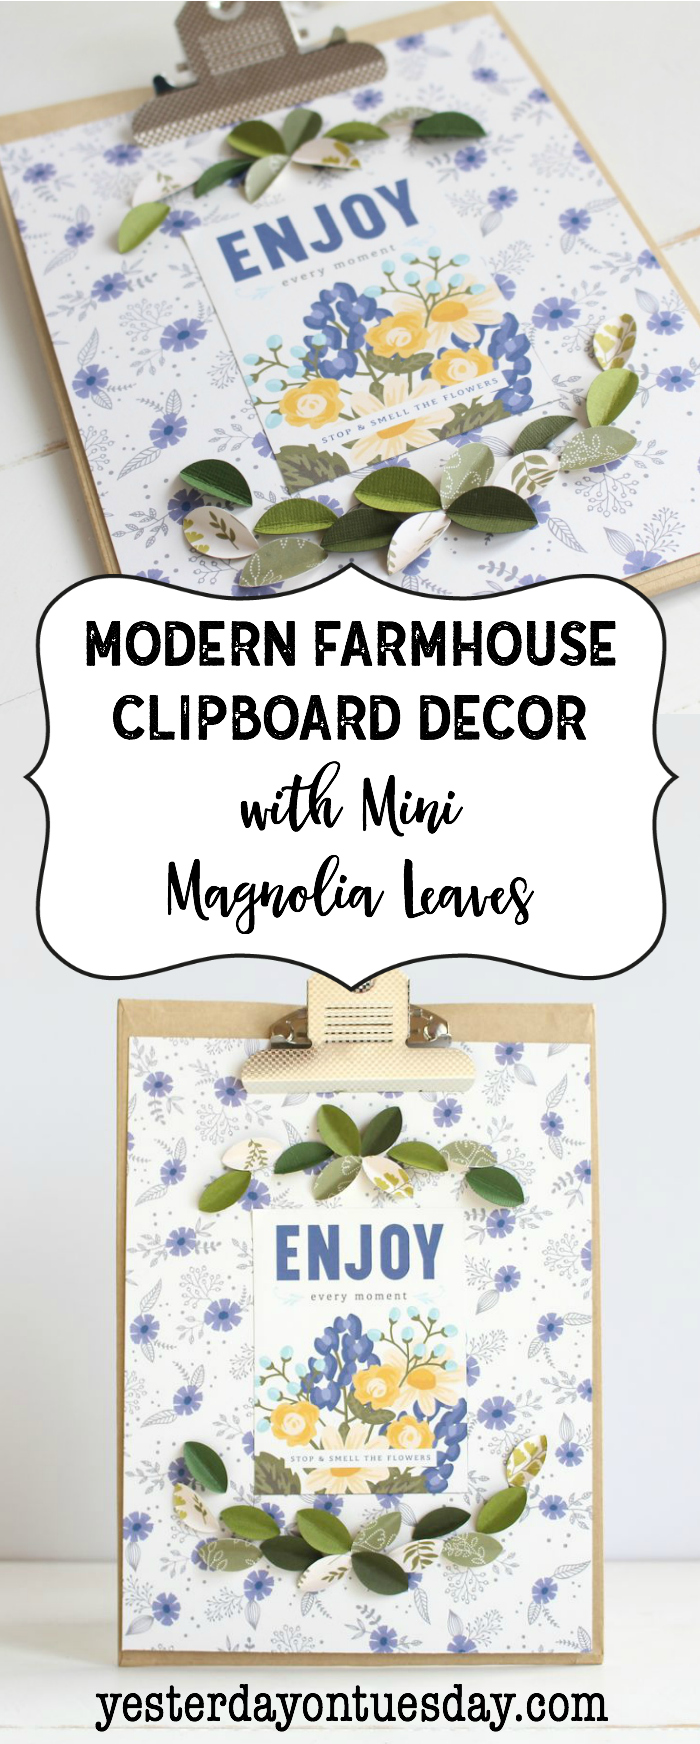 Modern Farmhouse Clipboard Decor: How to make darling fixer upper style art including mini magnolia leaves!